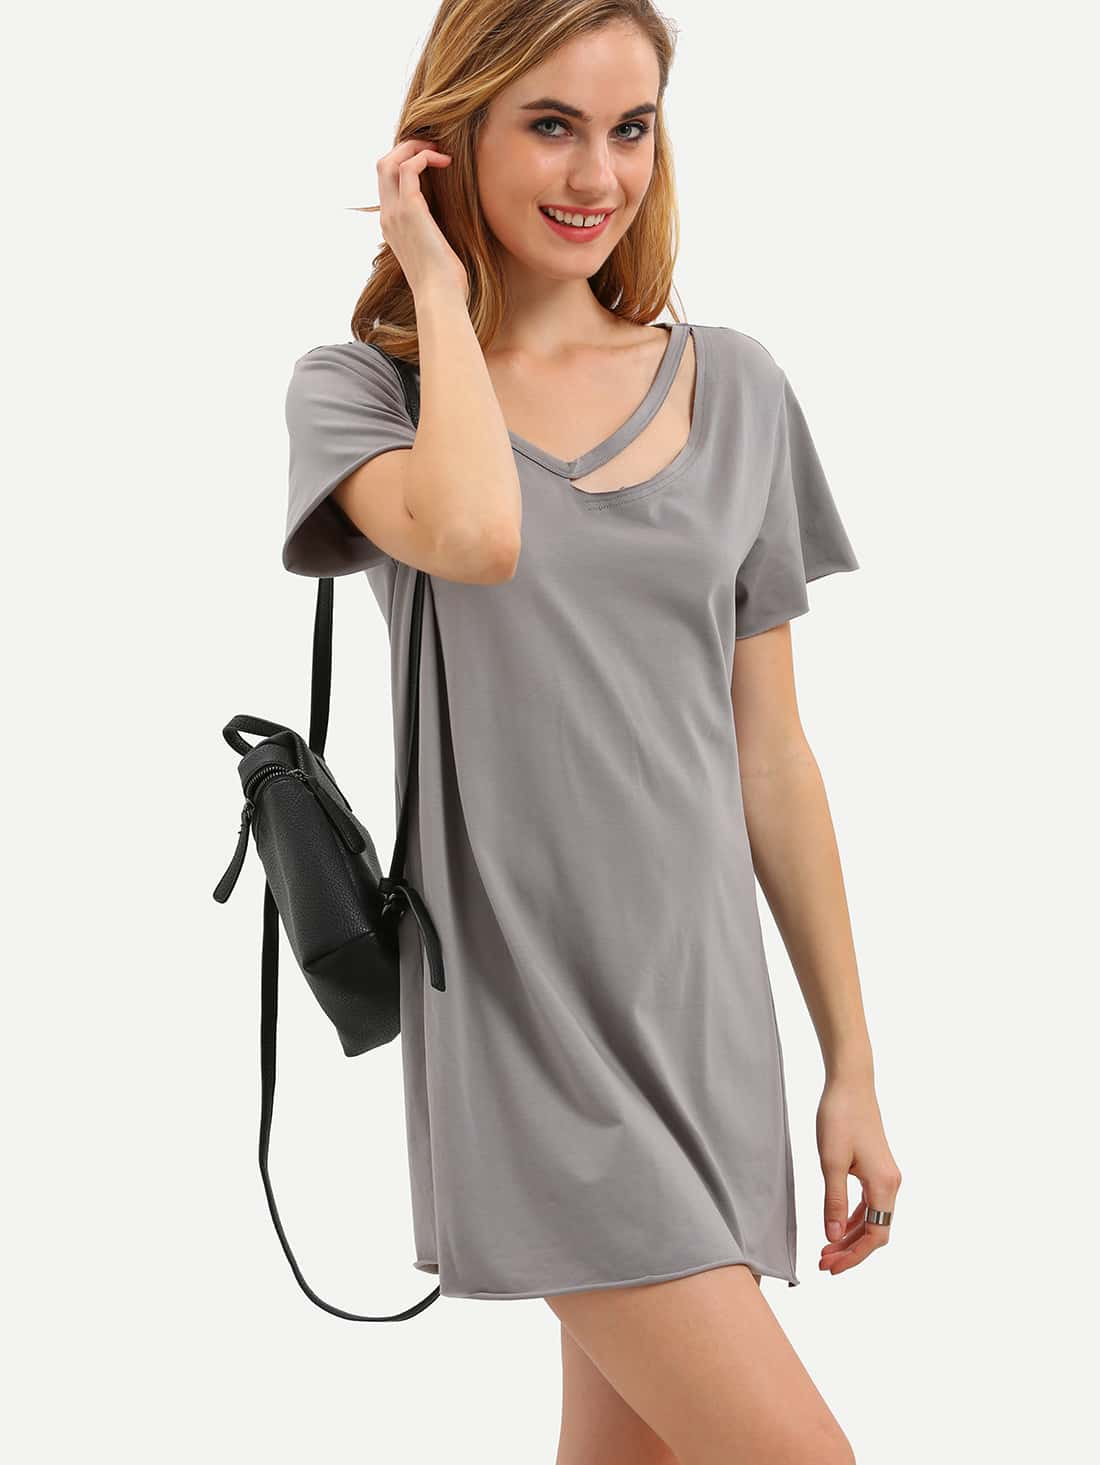 all products by shein at cheap price